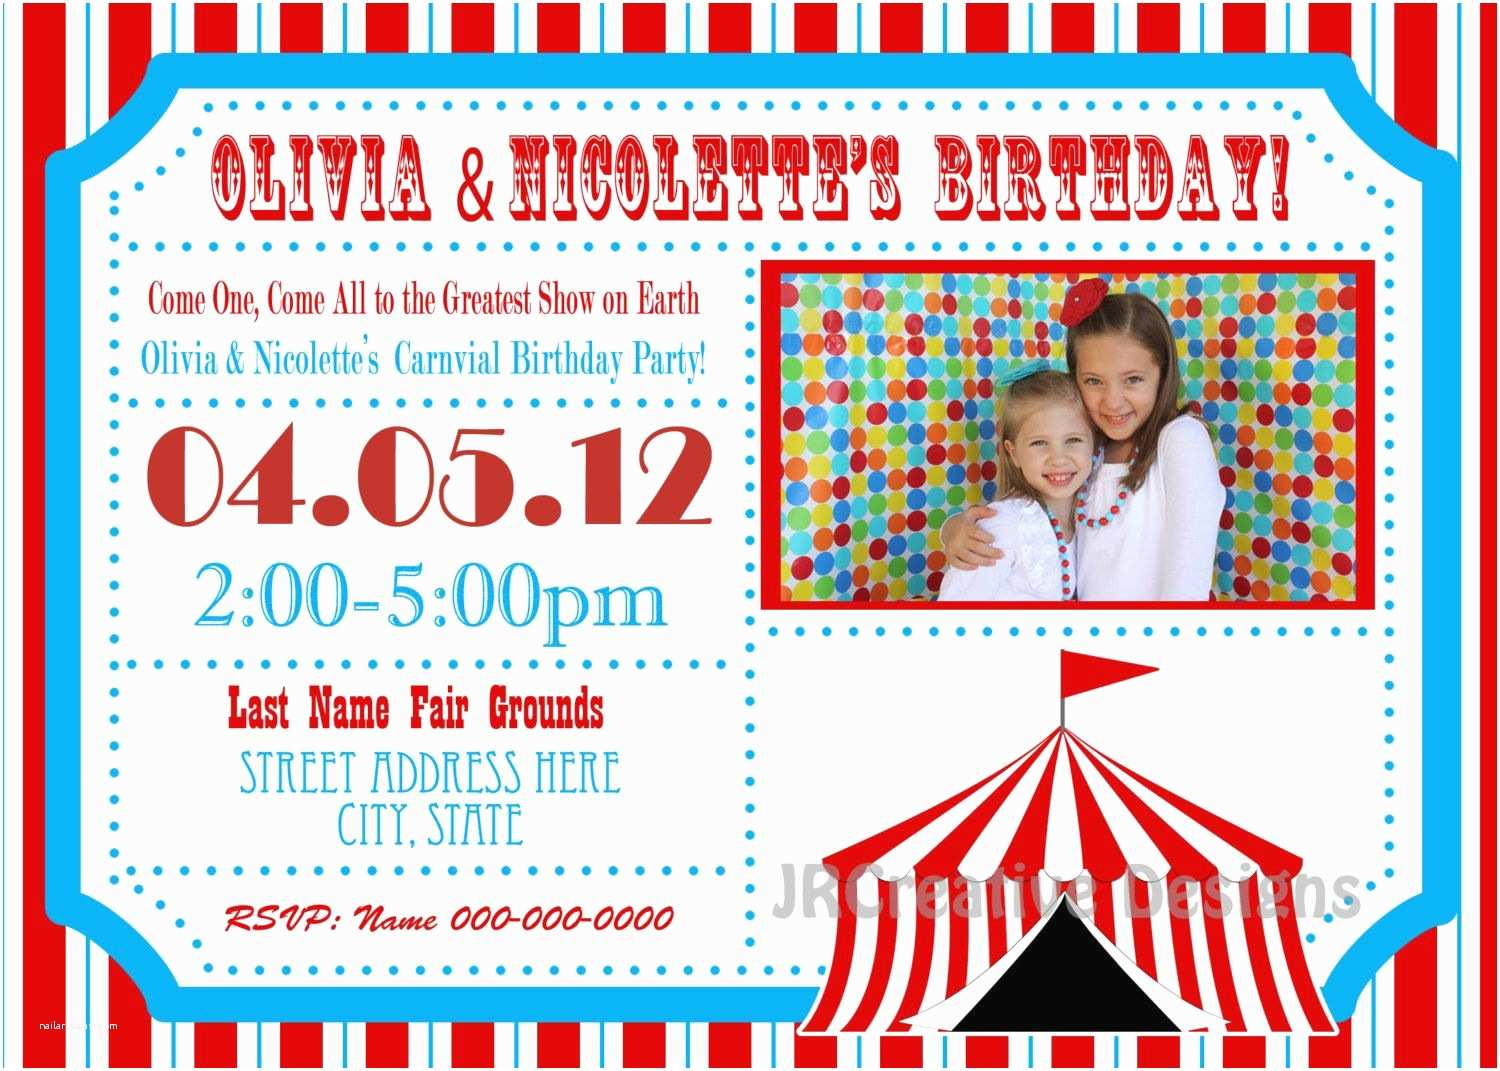 Circus Party Invitations Google Image Result for